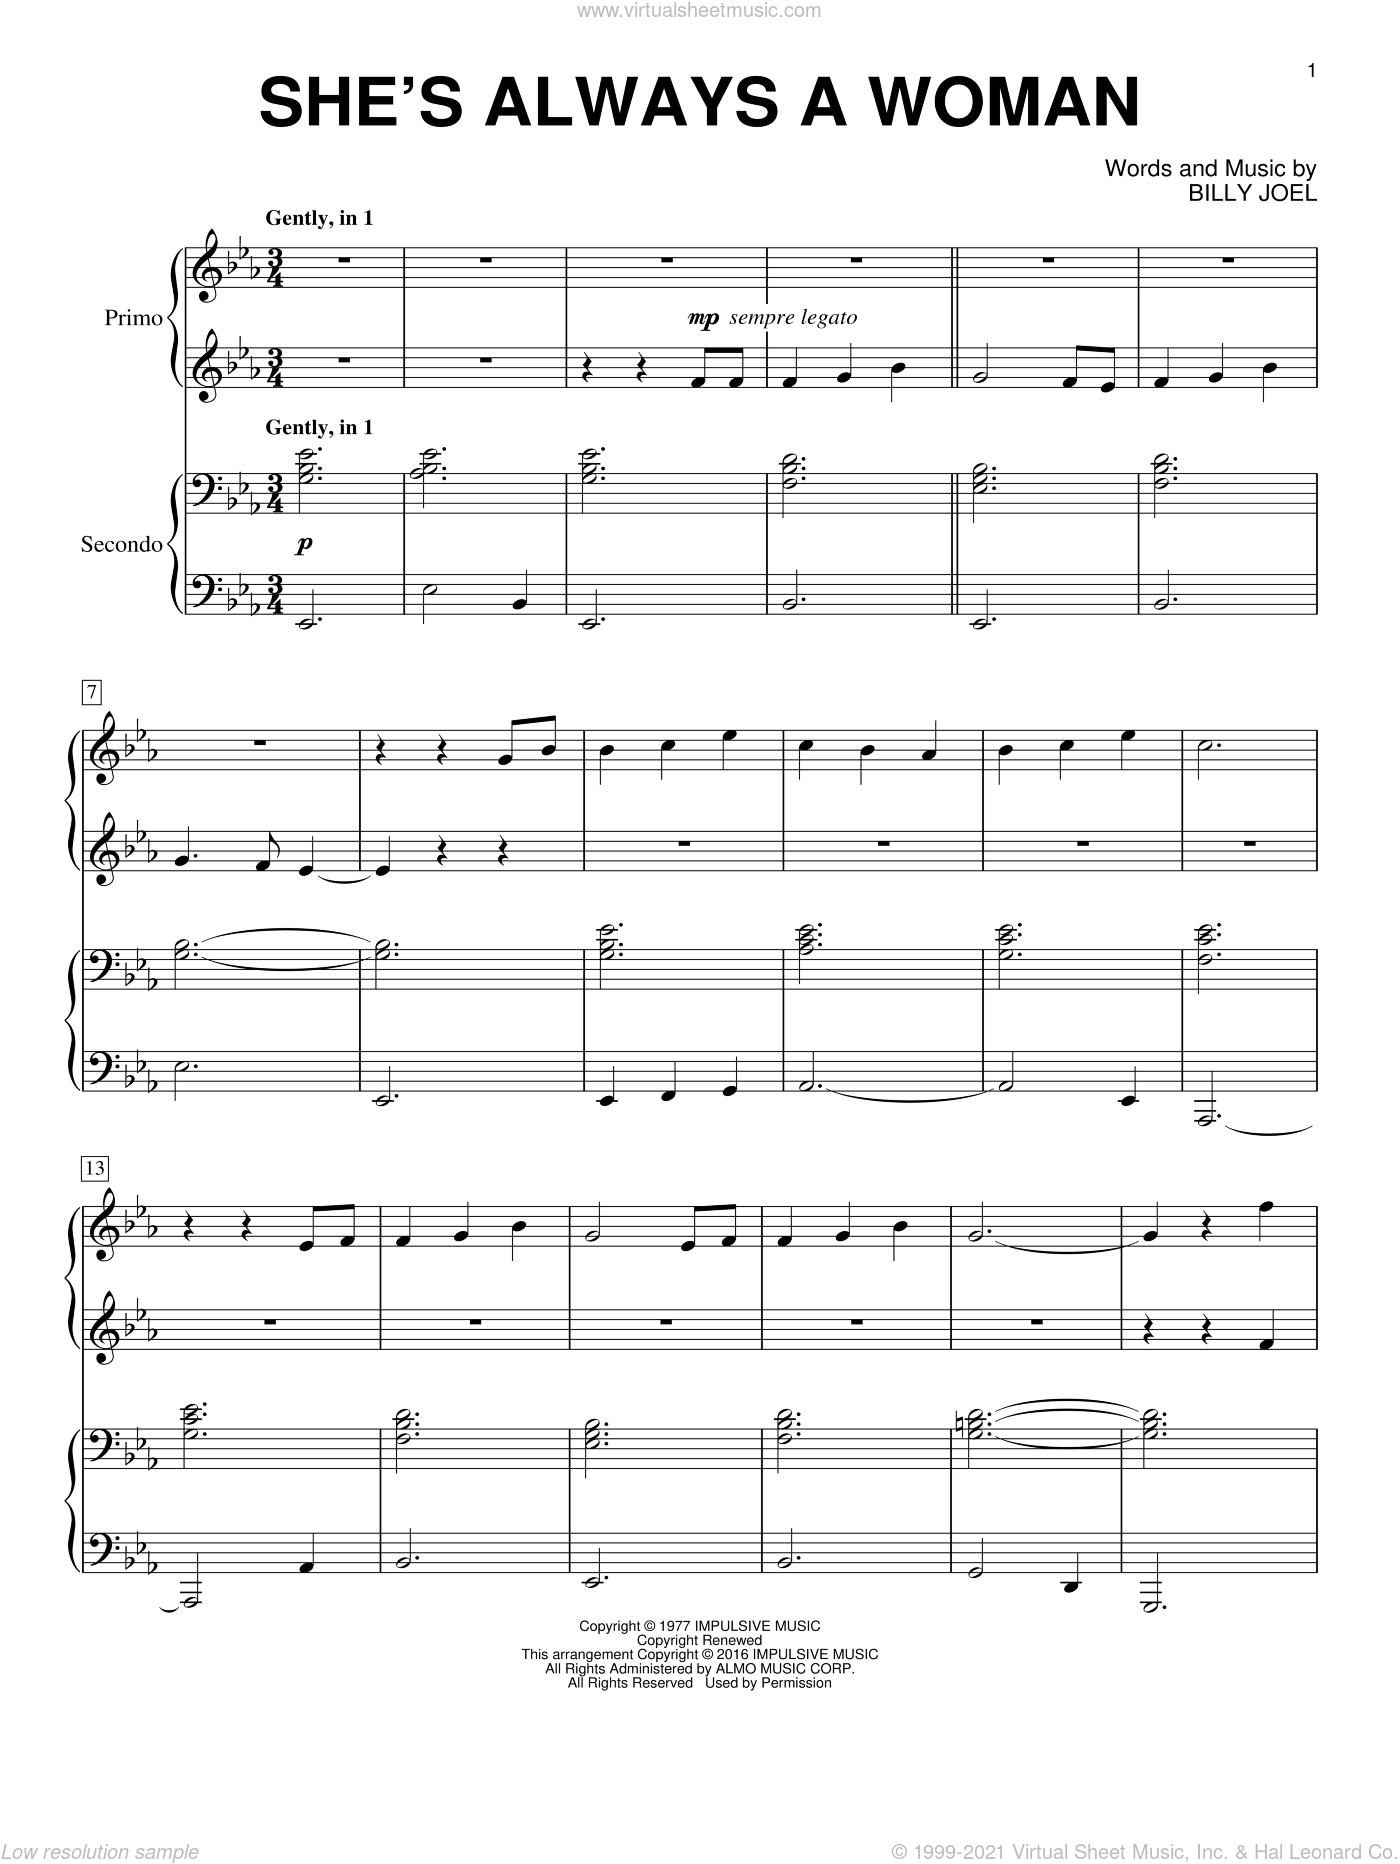 She's Always A Woman sheet music for piano four hands by Billy Joel, intermediate skill level